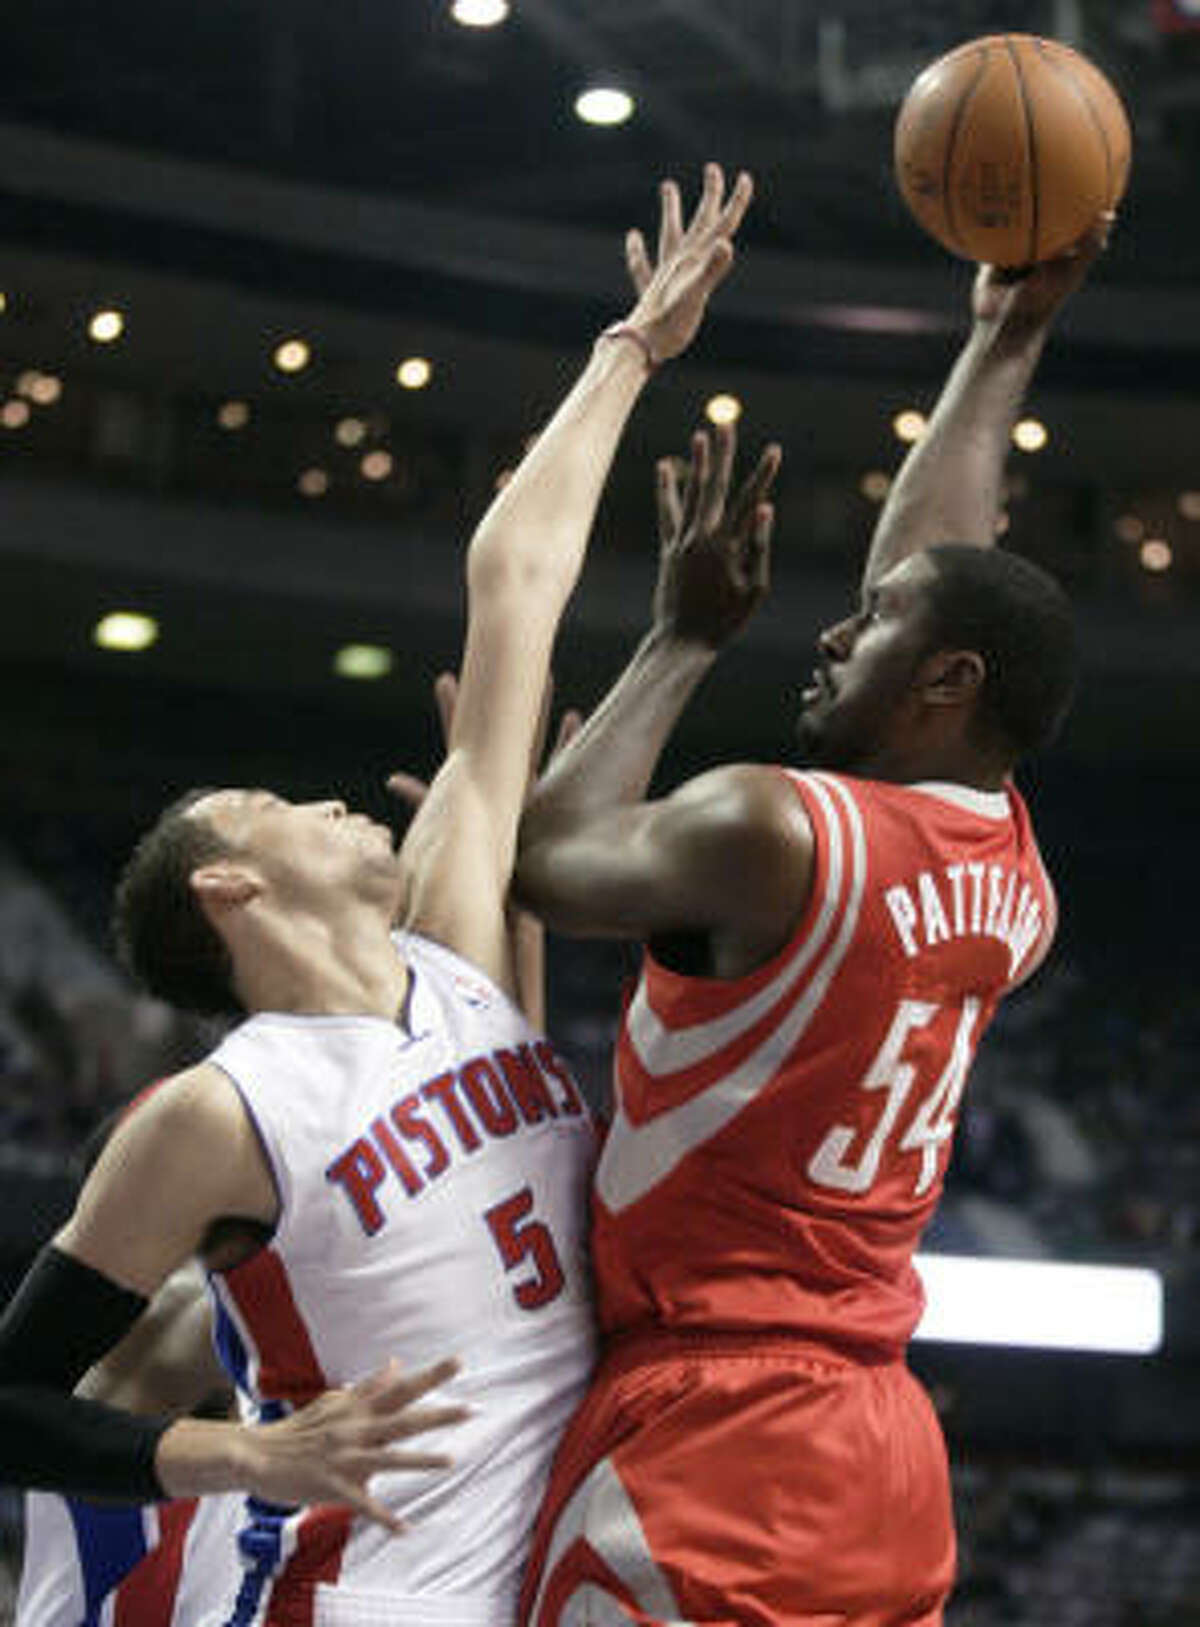 Rockets forward Patrick Patterson puts up a jumphook against Pistons forward Austin Daye during the first half.